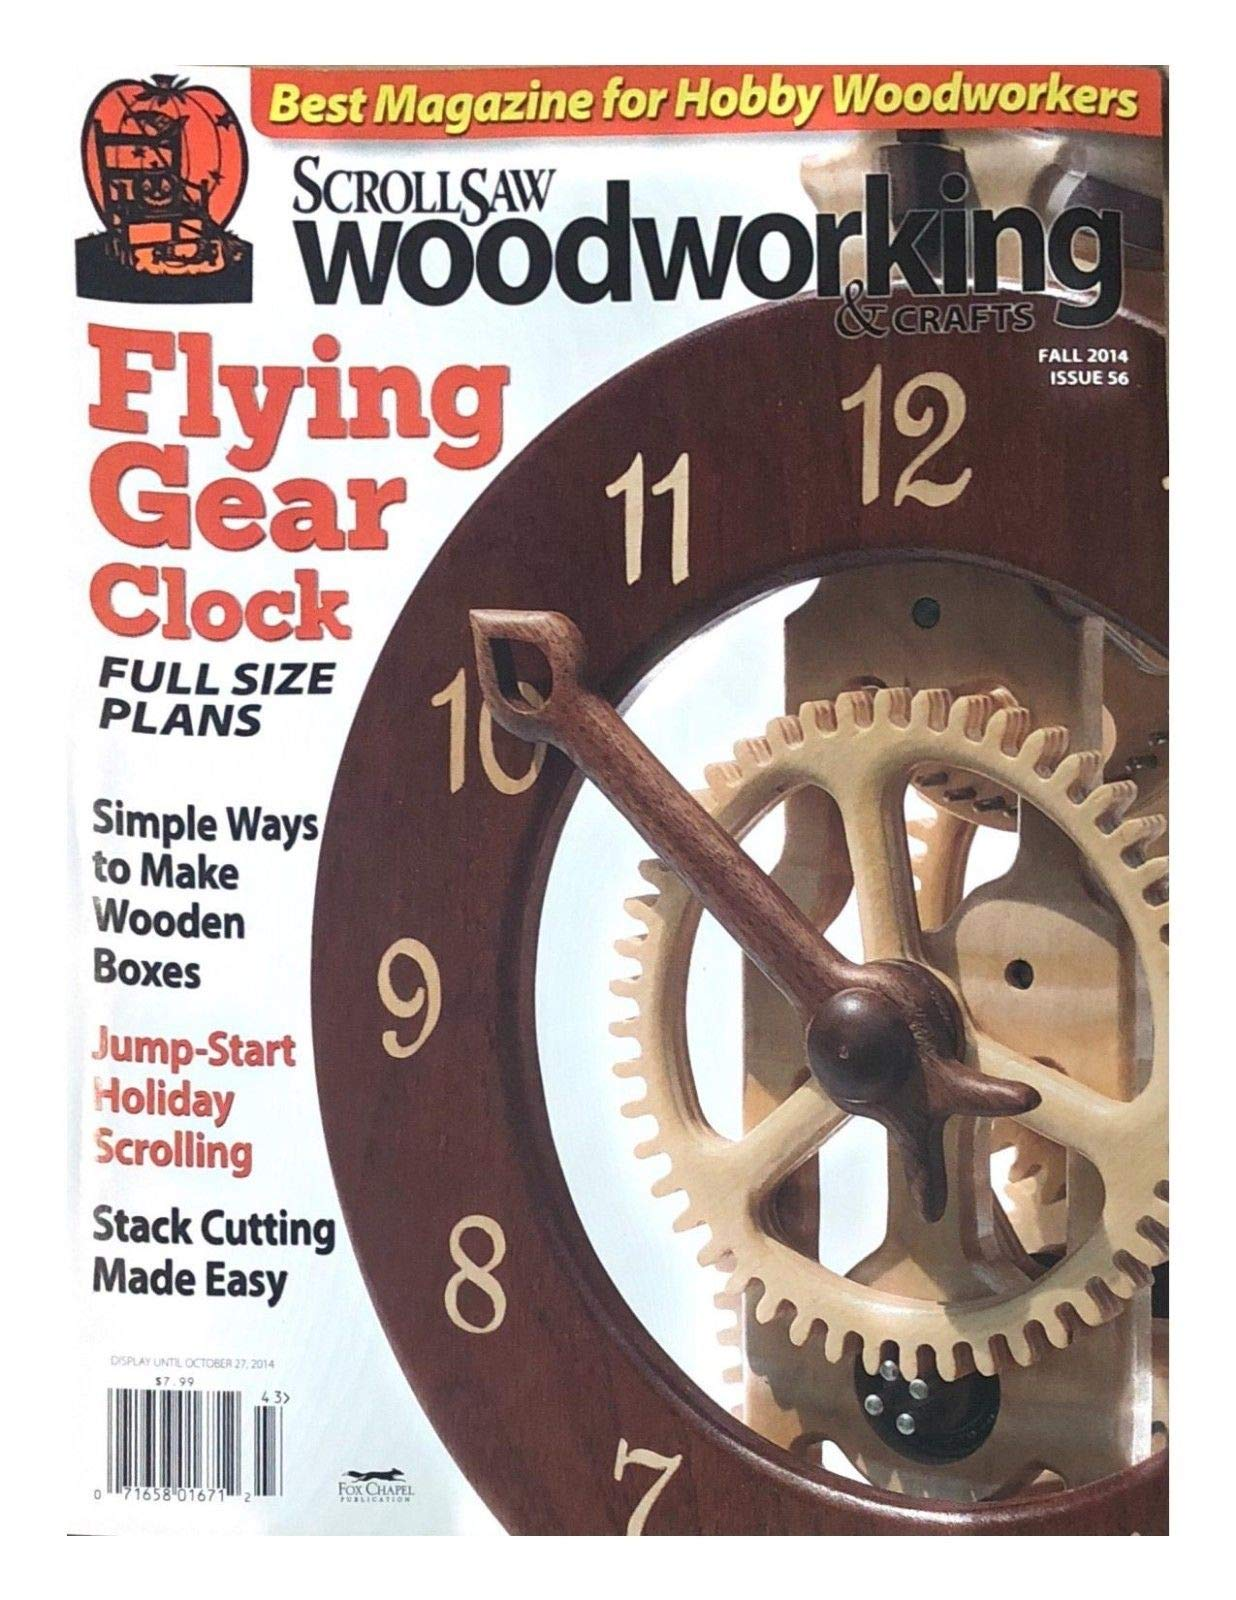 SCROLL SAW WOOD WORKING & CRAFTS MAGAZINE, FALL 2014 ISSUE 56